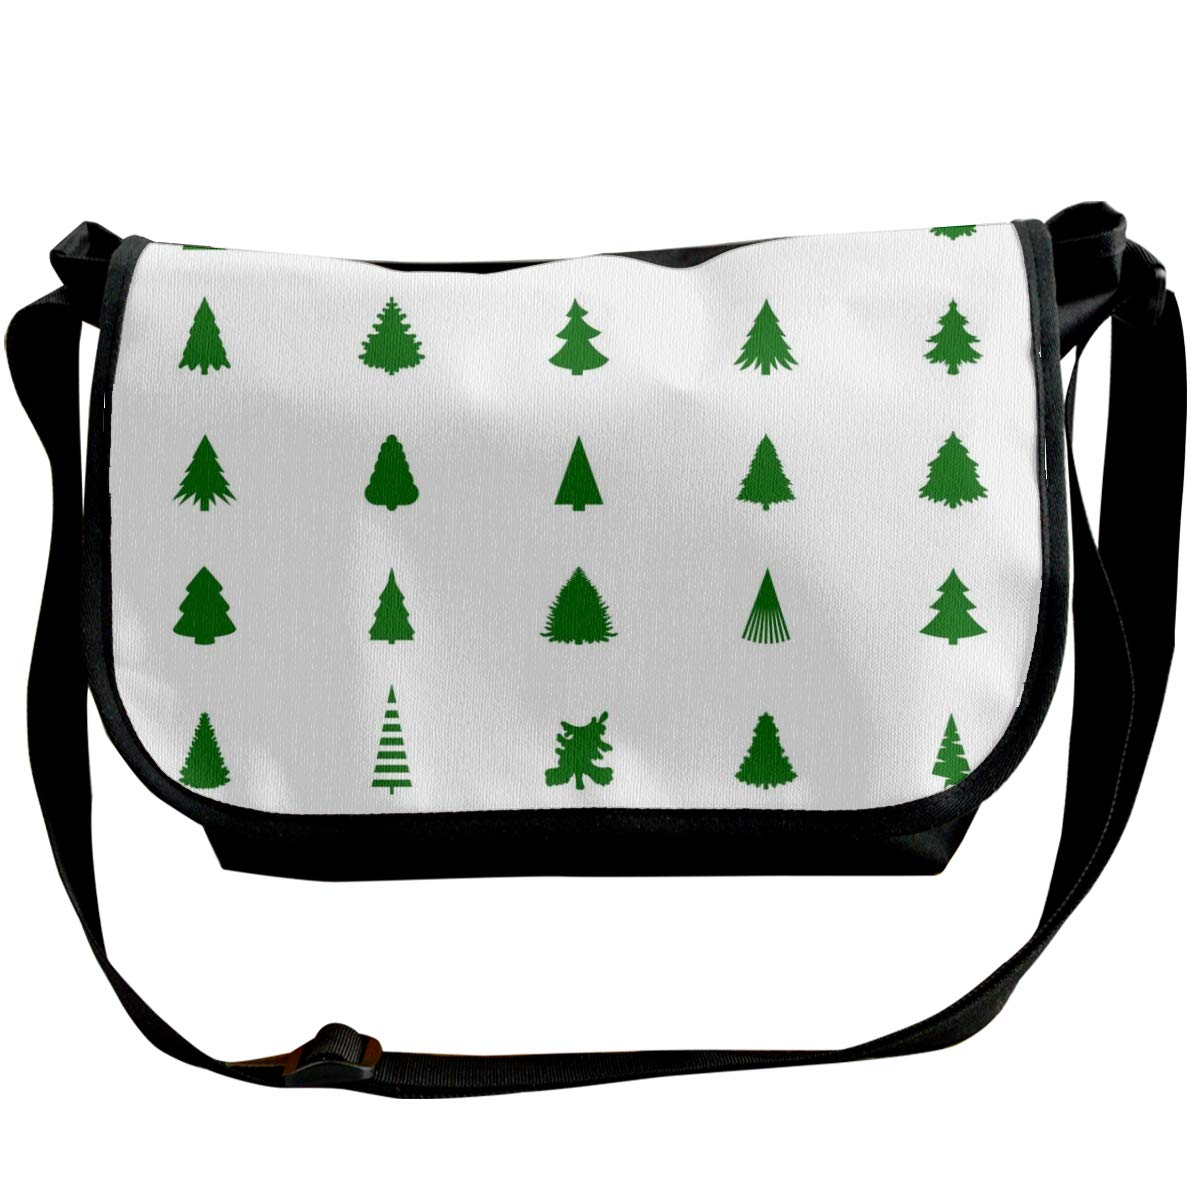 Taslilye Christmas Tree Silhouette Vector Image Customized Wide Crossbody Shoulder Bag For Men And Women For Daily Work Or Travel